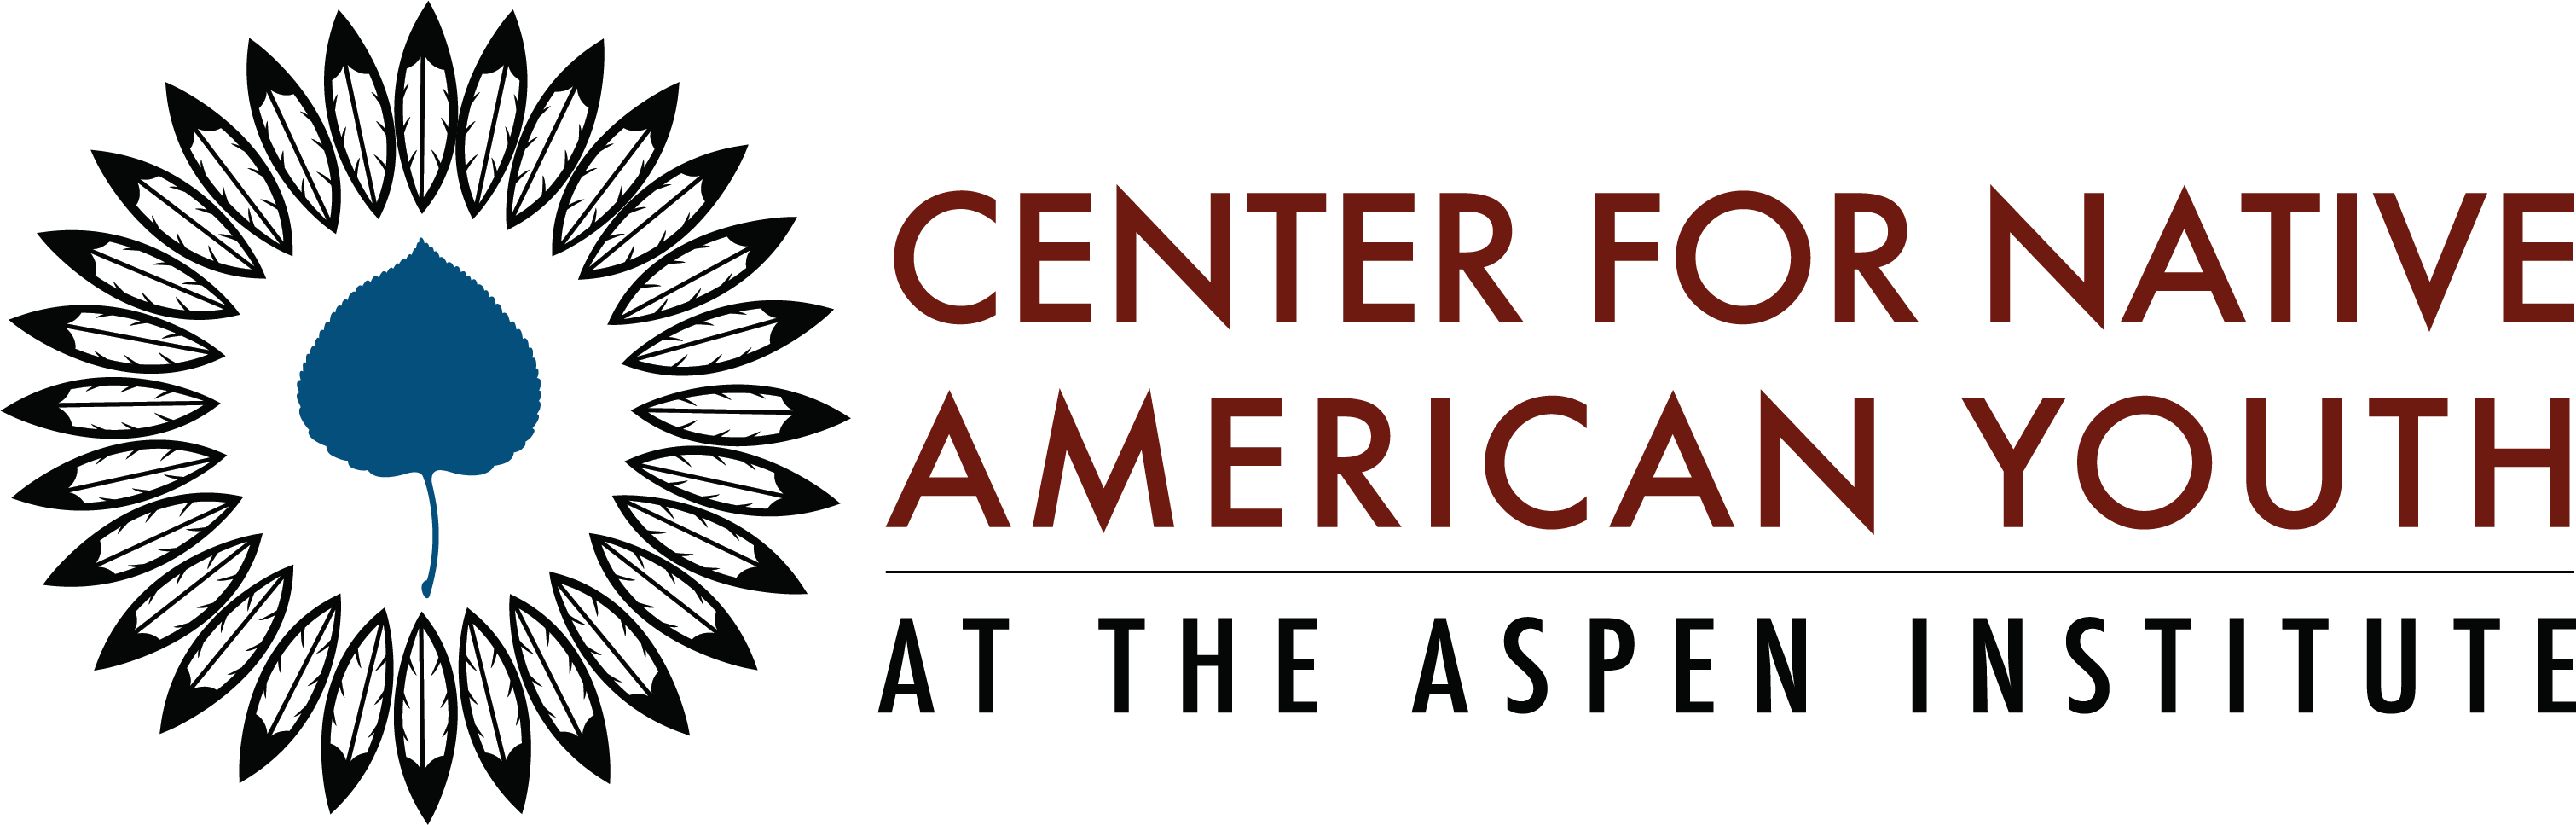 Center for Native American Youth at the Aspen Institute